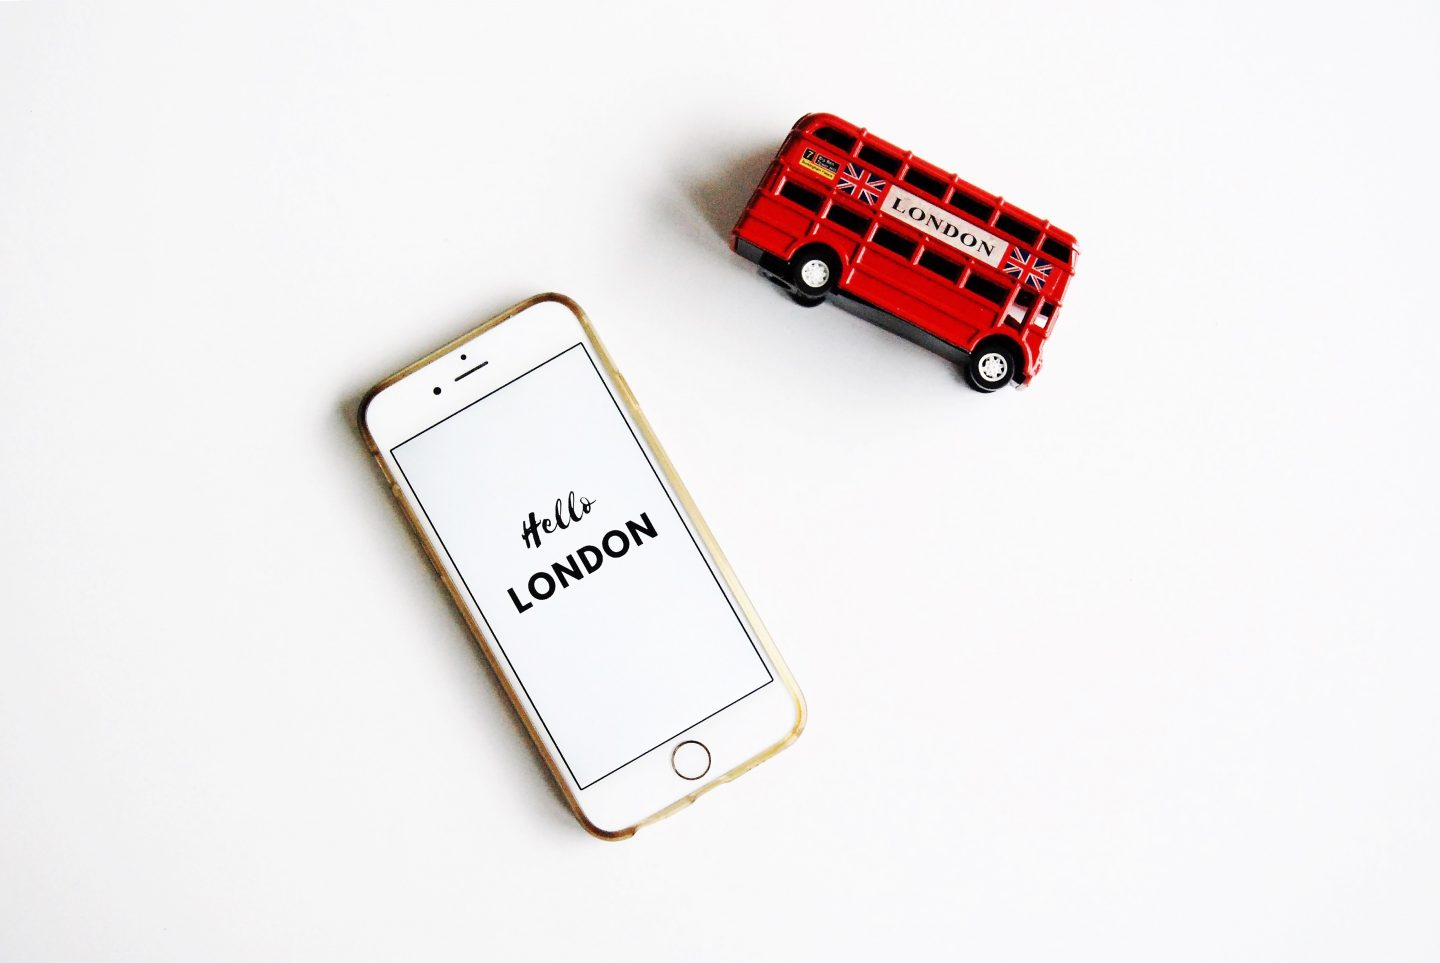 The best apps to download to visit London suggested by a local